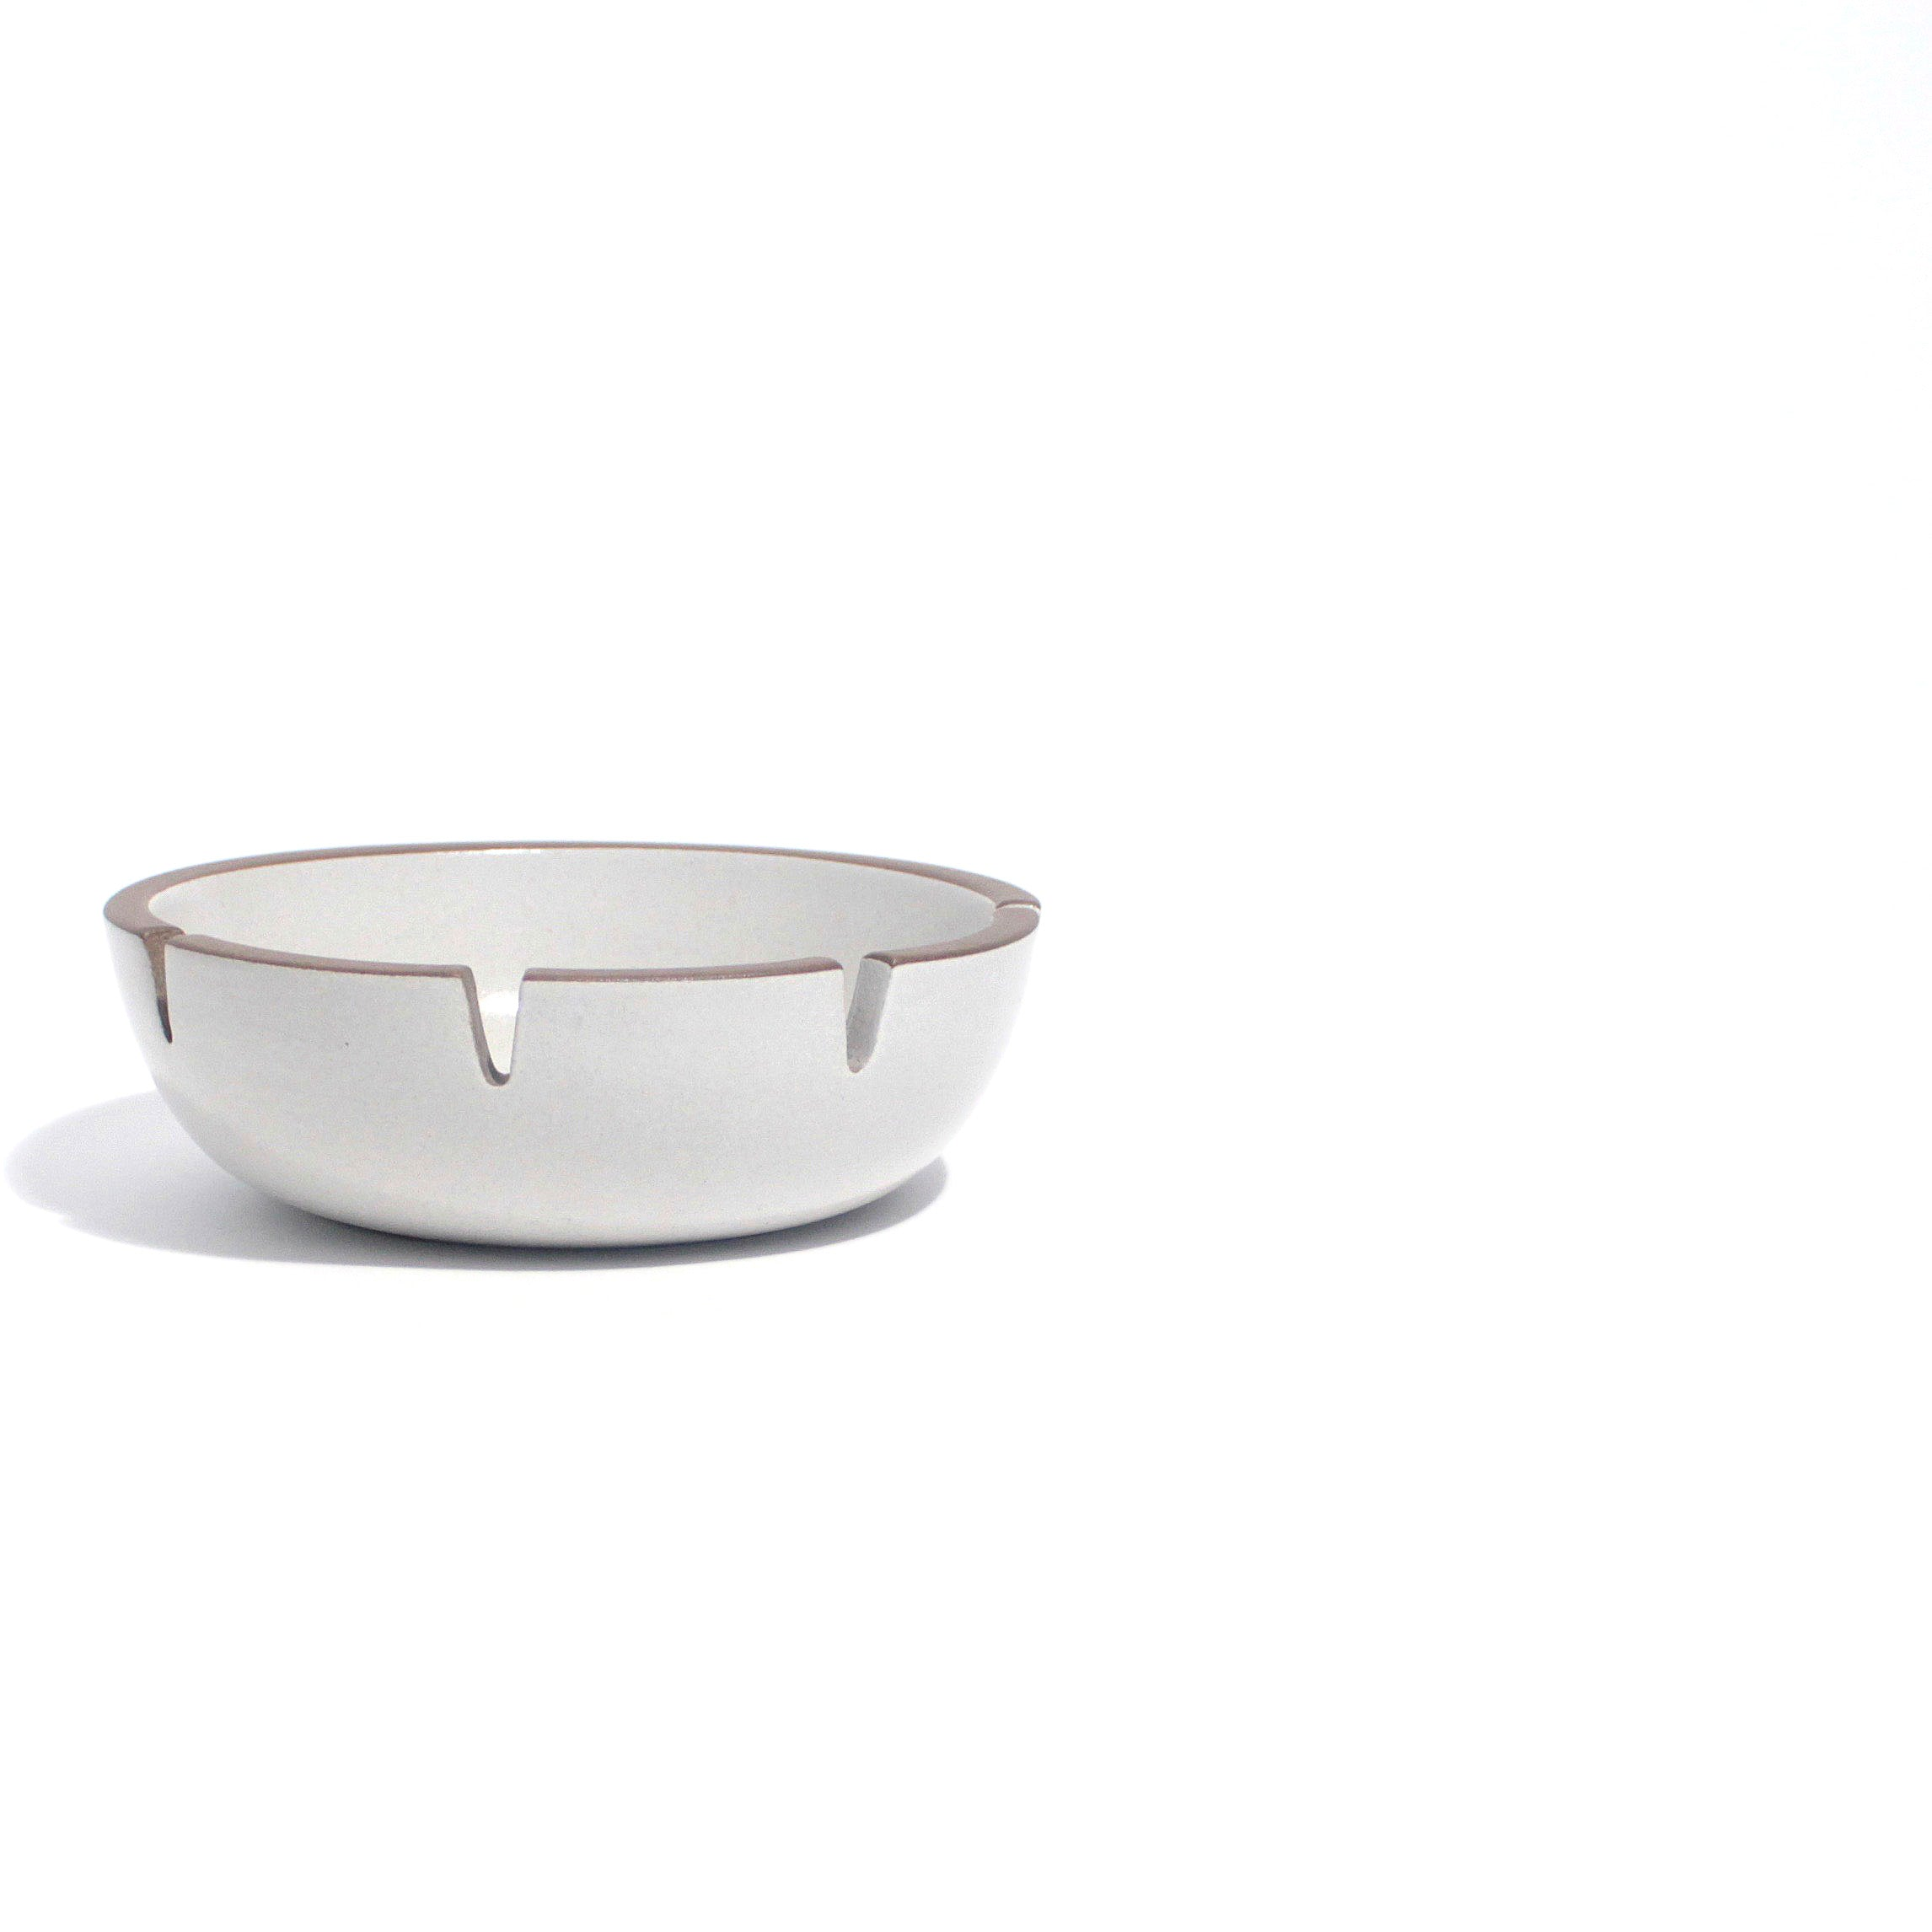 White Heath Ceramic Ashtray